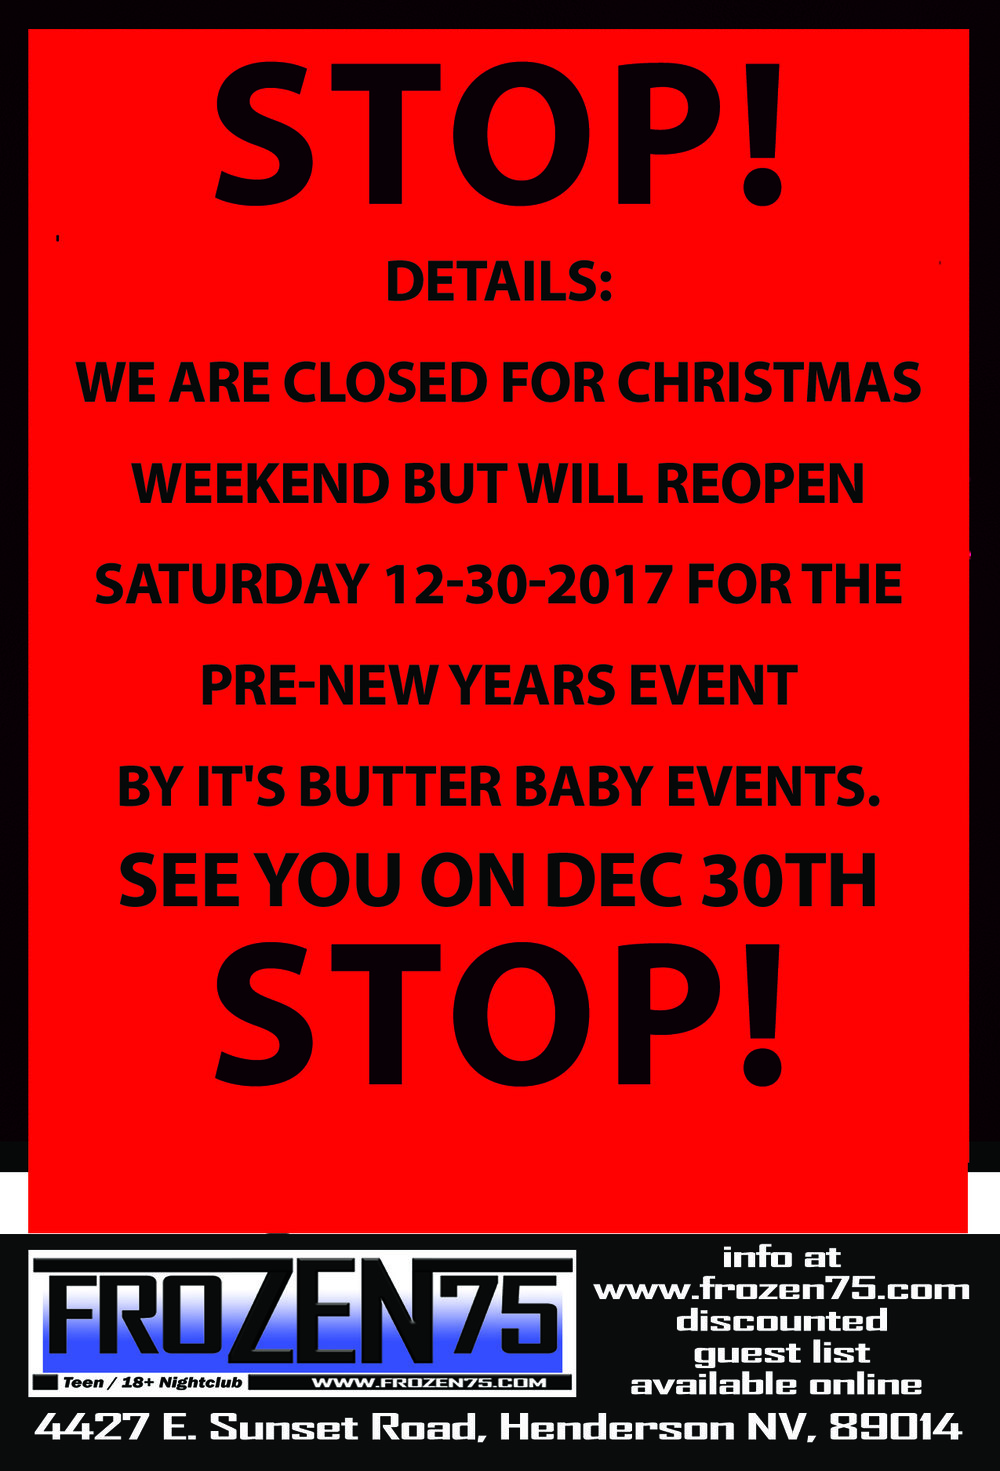 FroZEN75_REMIX SATURDAYS_THIS WEEK ONLINE_12-23-2017_STOP.jpg